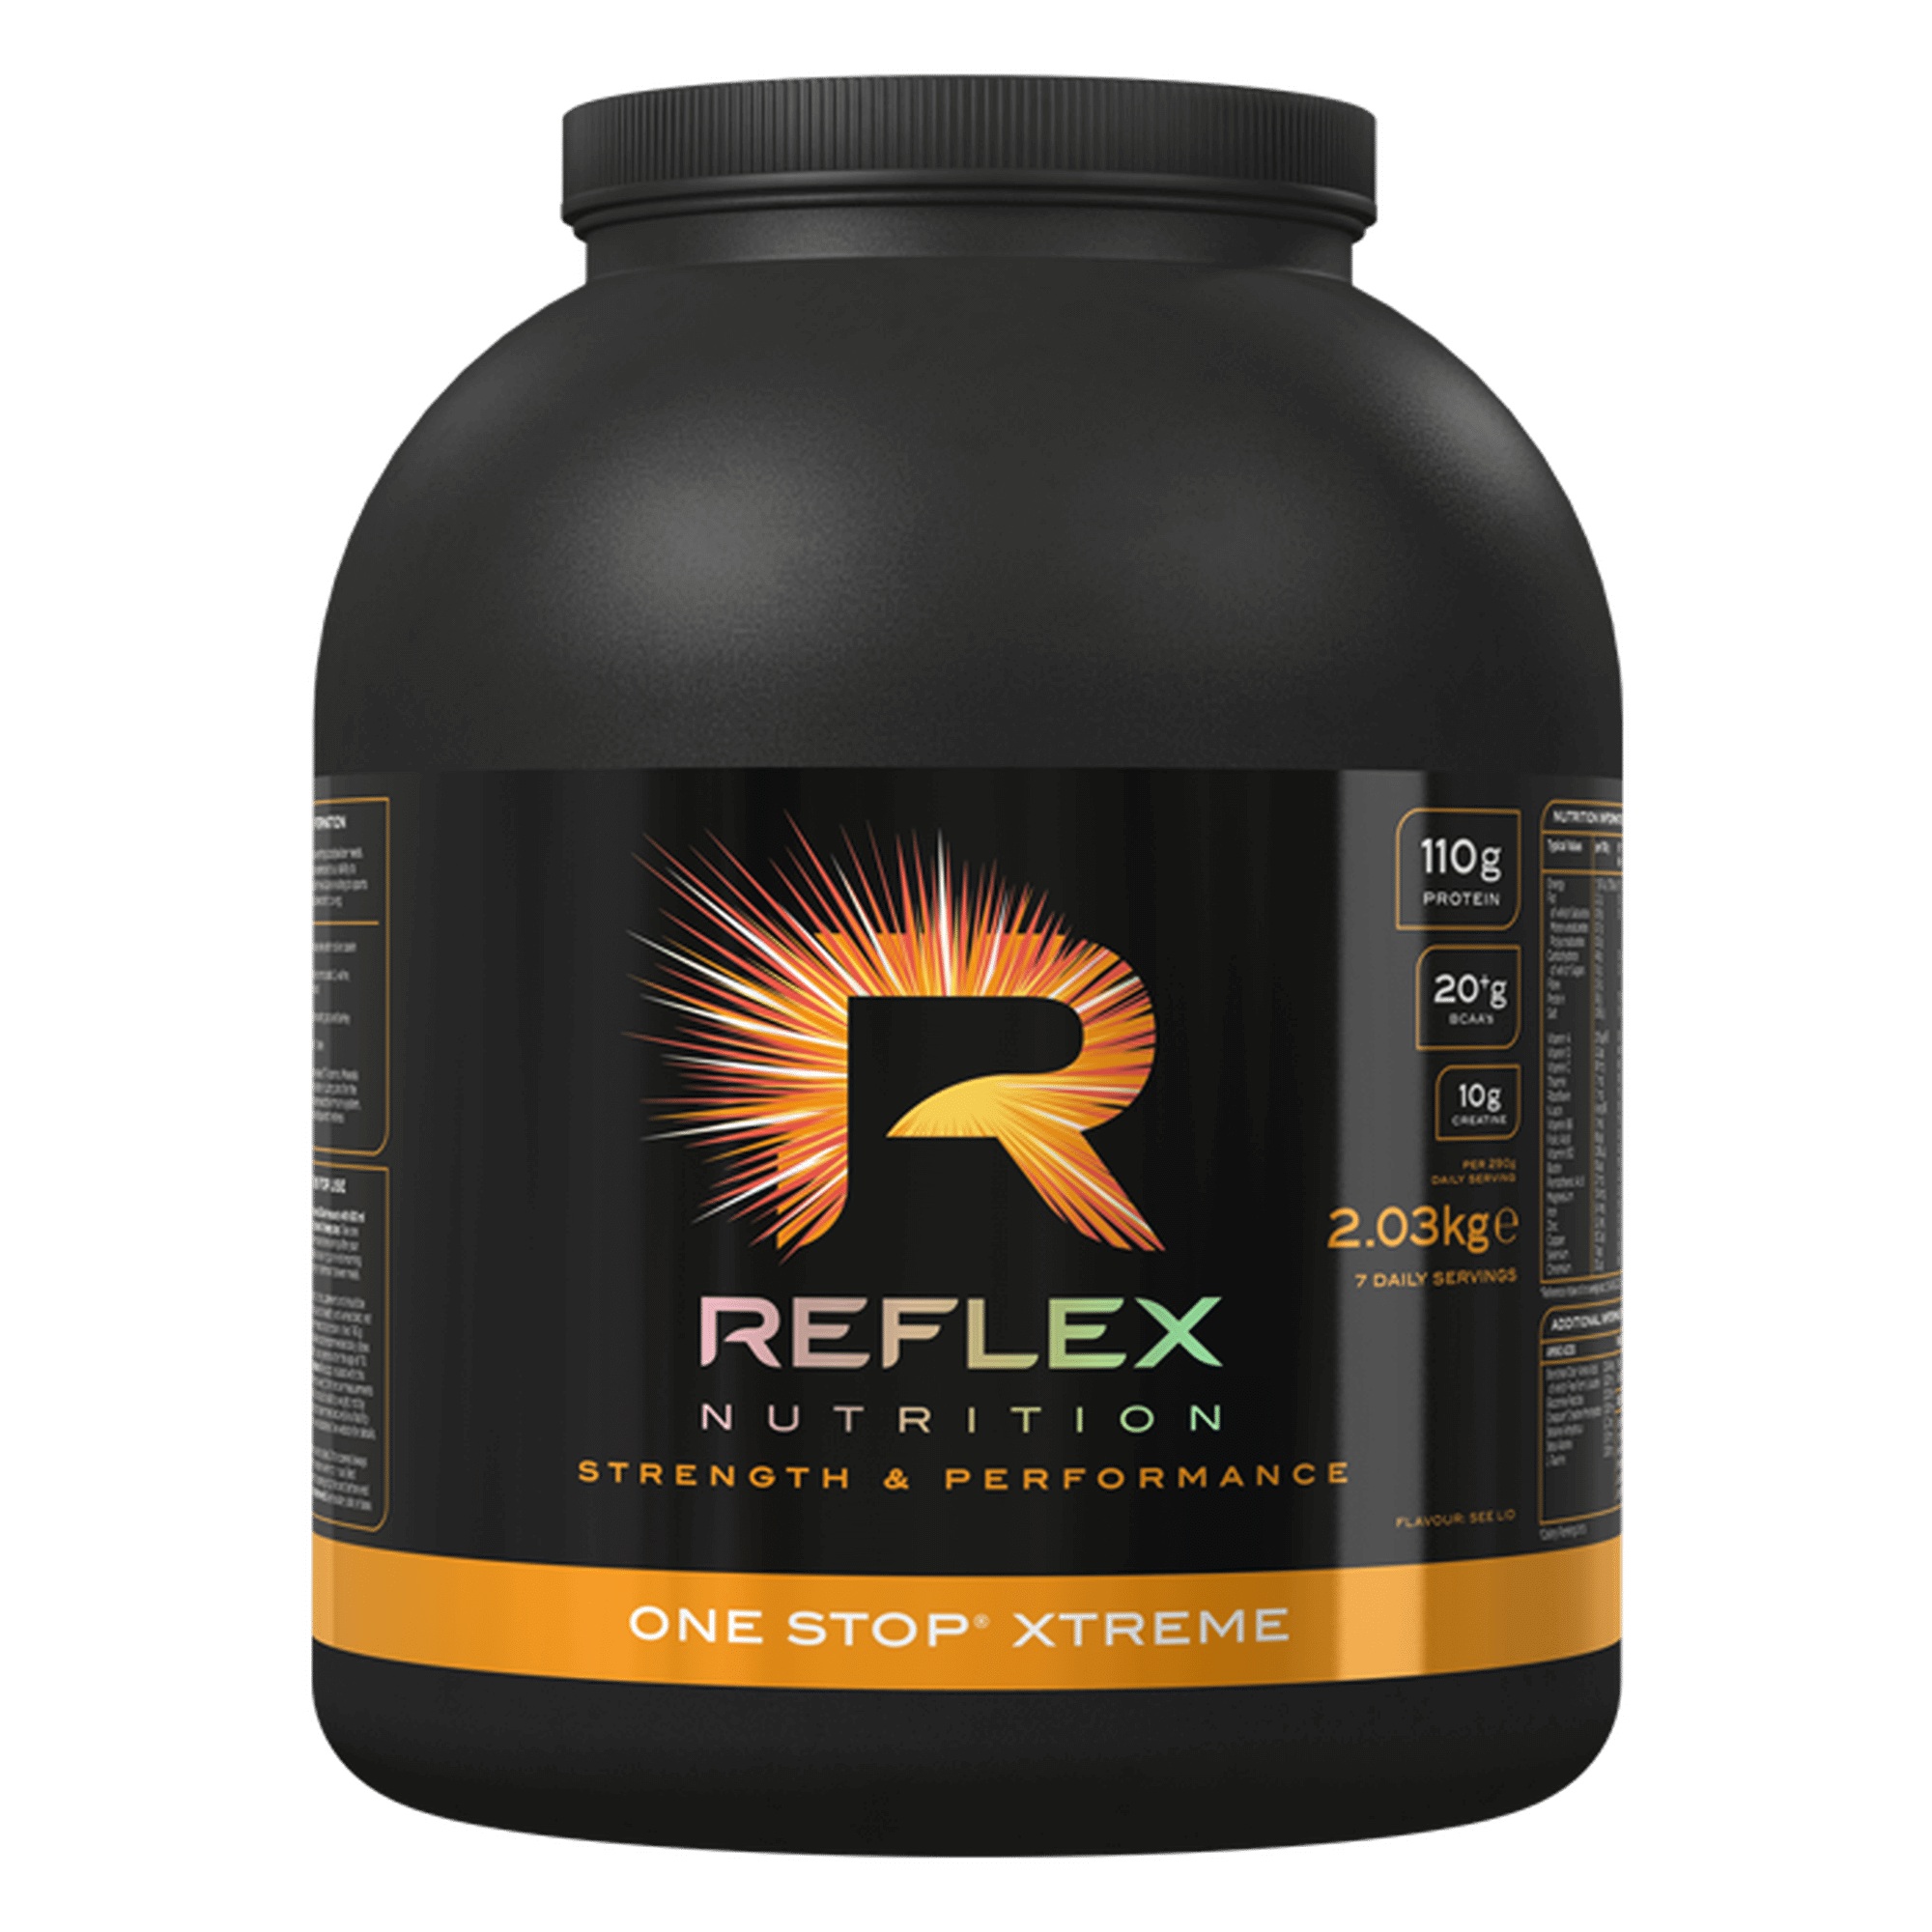 Reflex Nutrition One Stop Xtreme 2030g